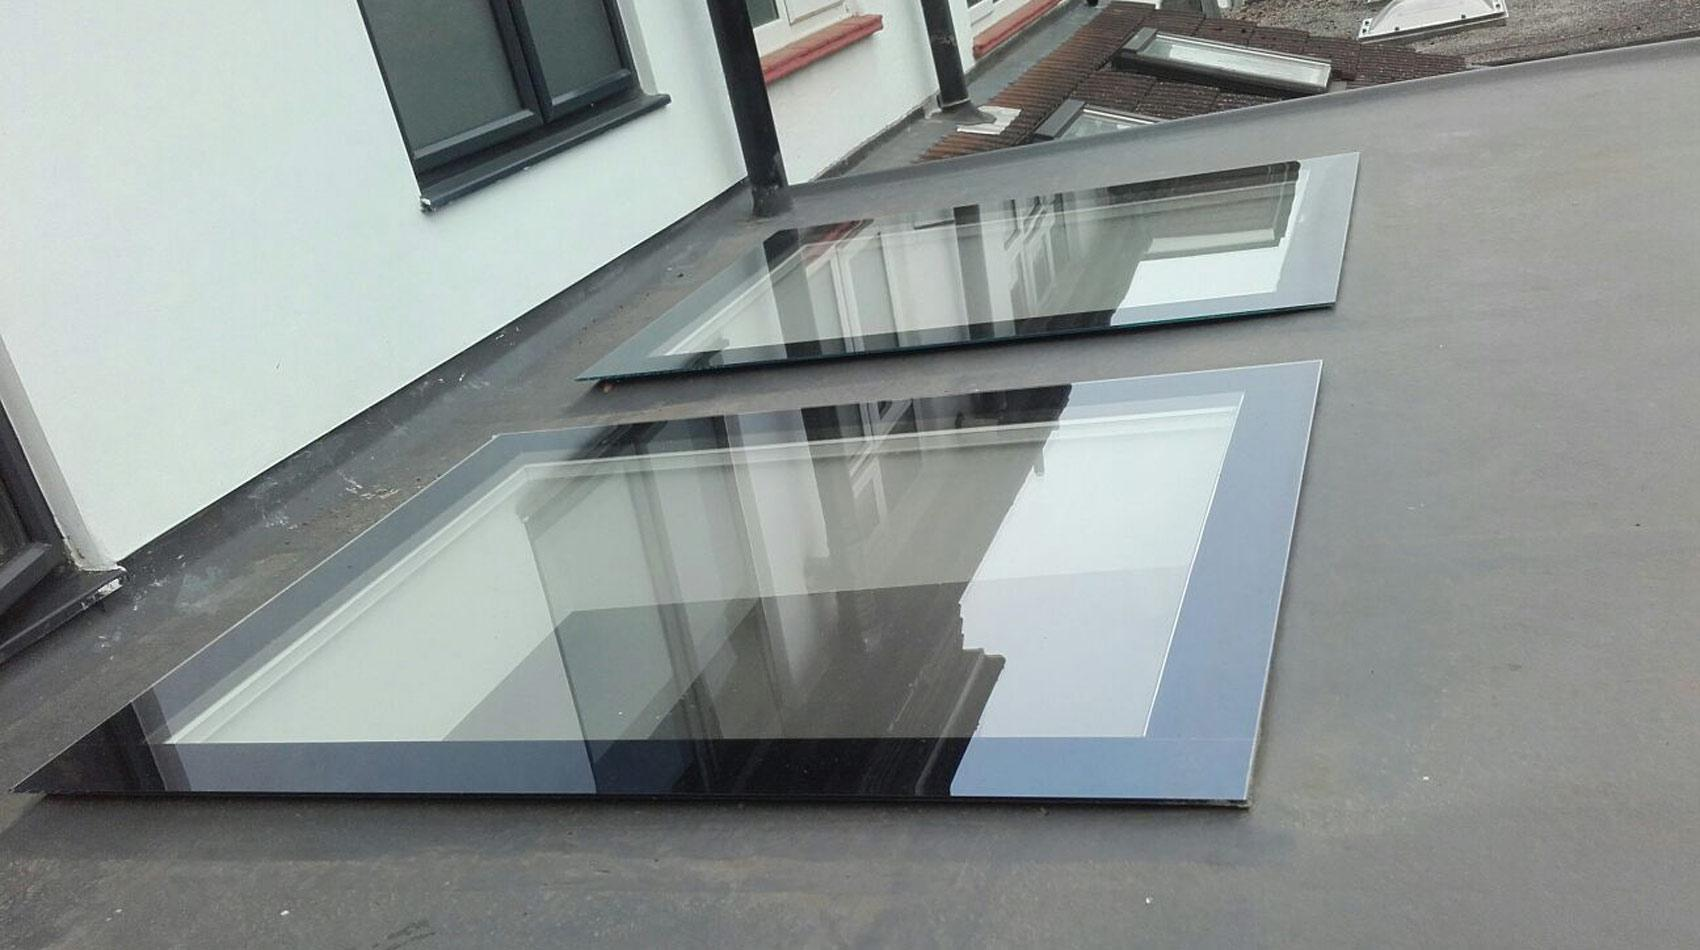 roof-skylight-windows.jpg